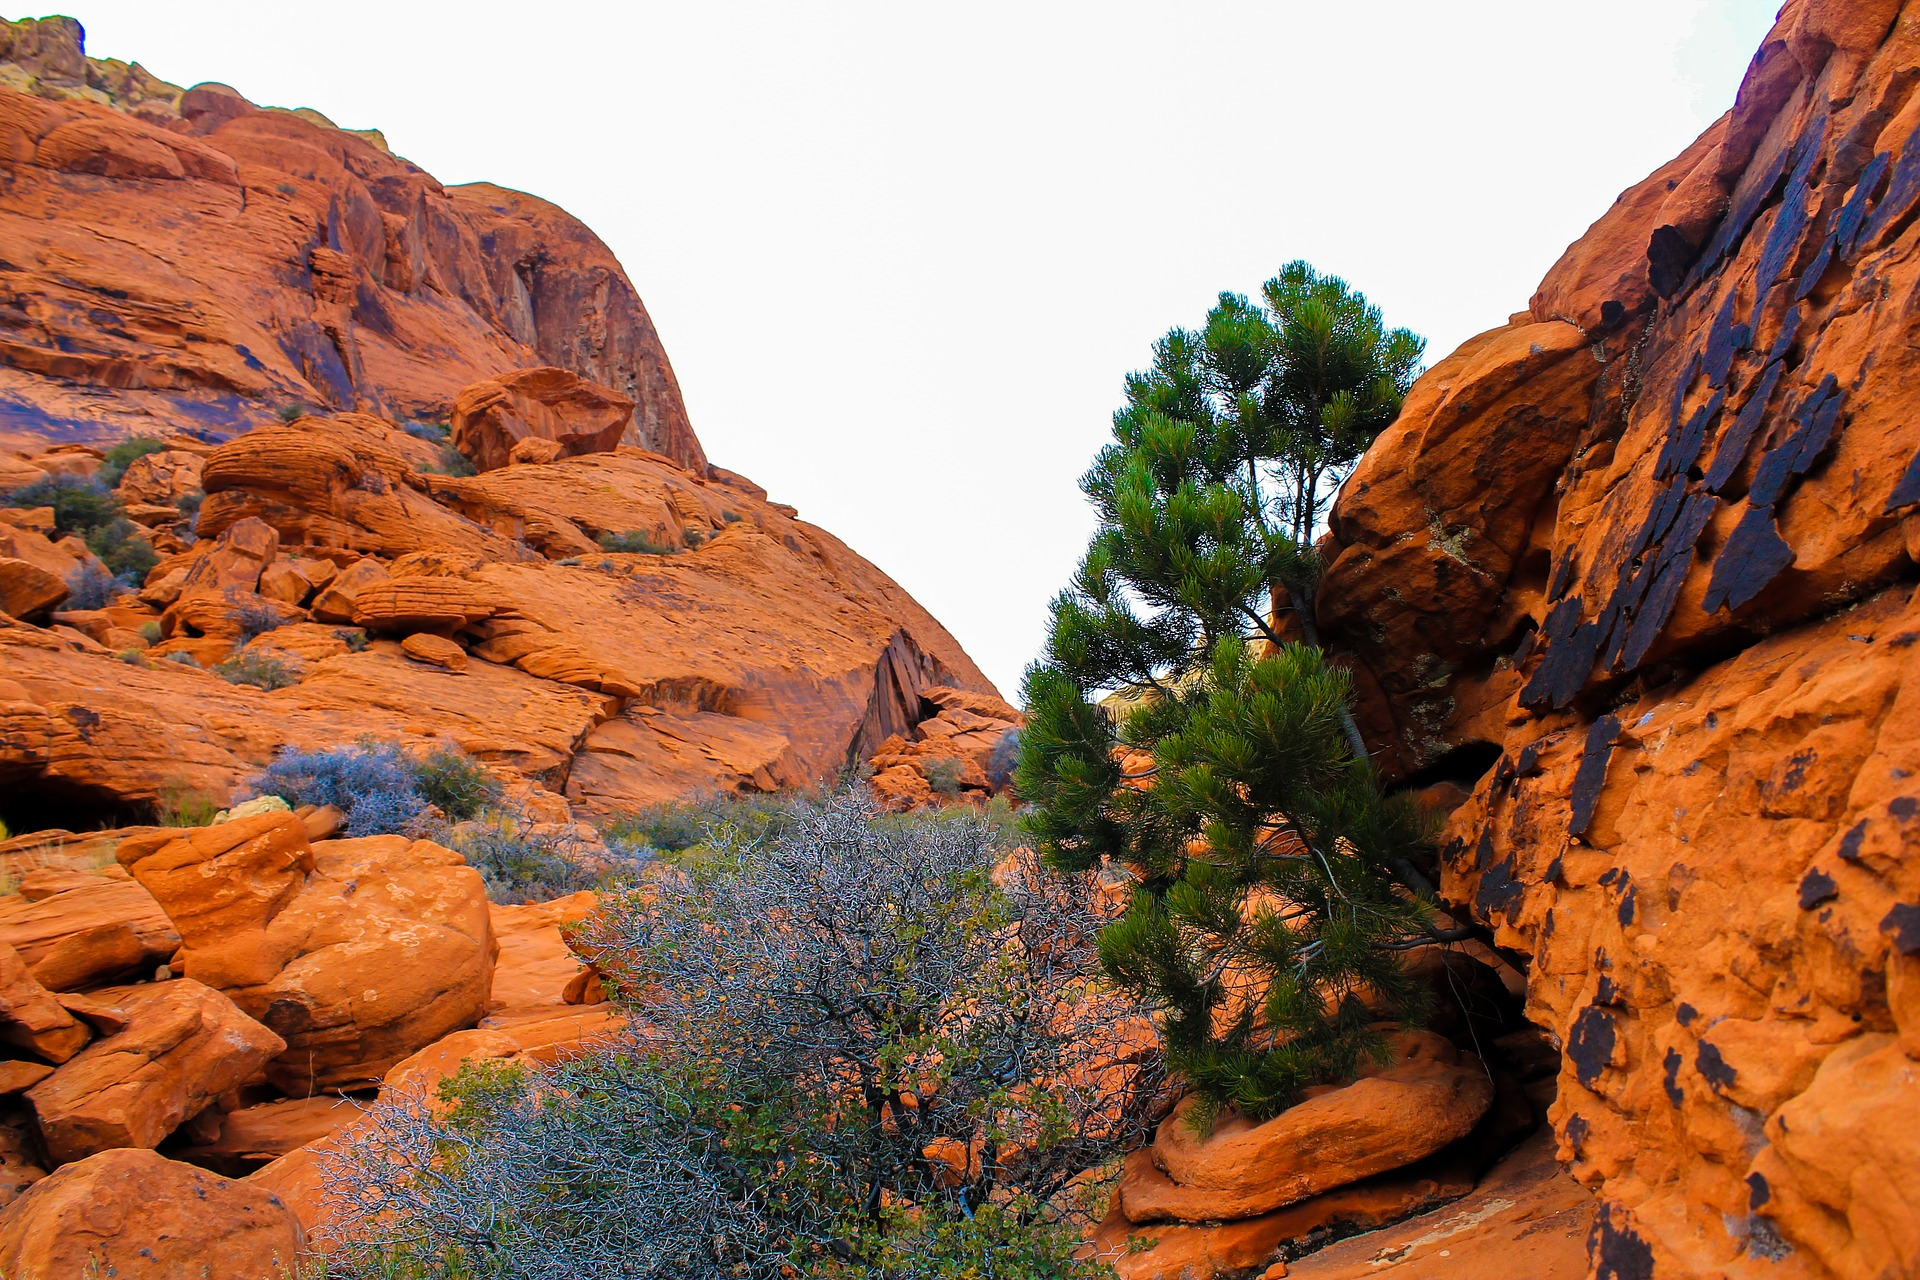 The Red Rock Canyon National Conservation Area, Near Las Vegas